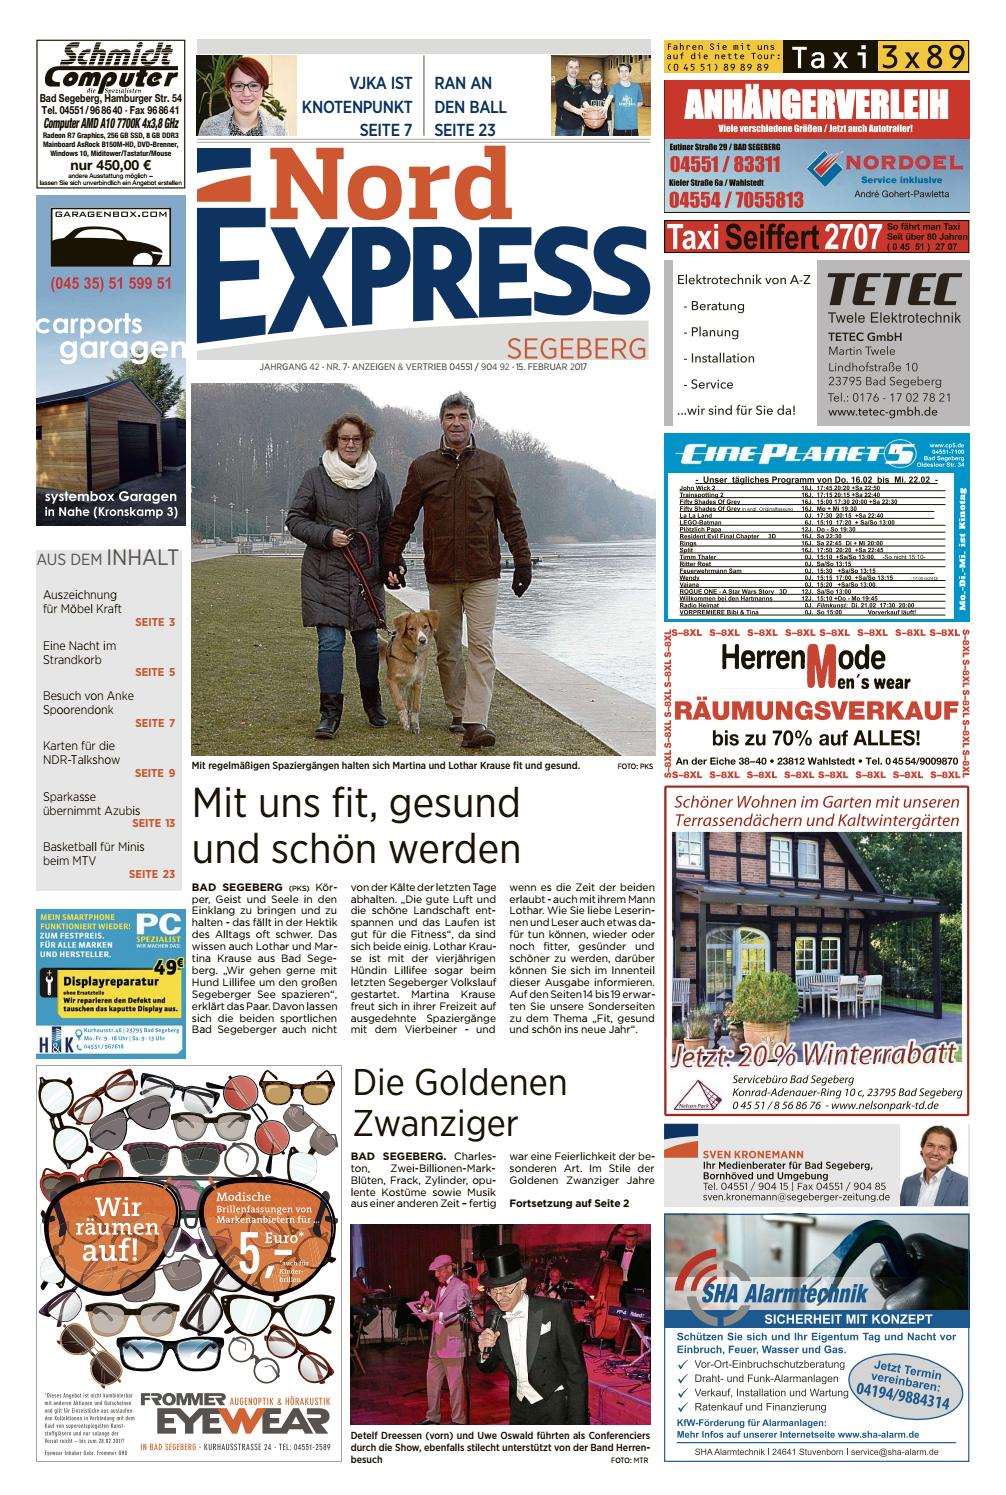 Möbel Krause Nord Express Segeberg By Nordexpress-online.de - Issuu